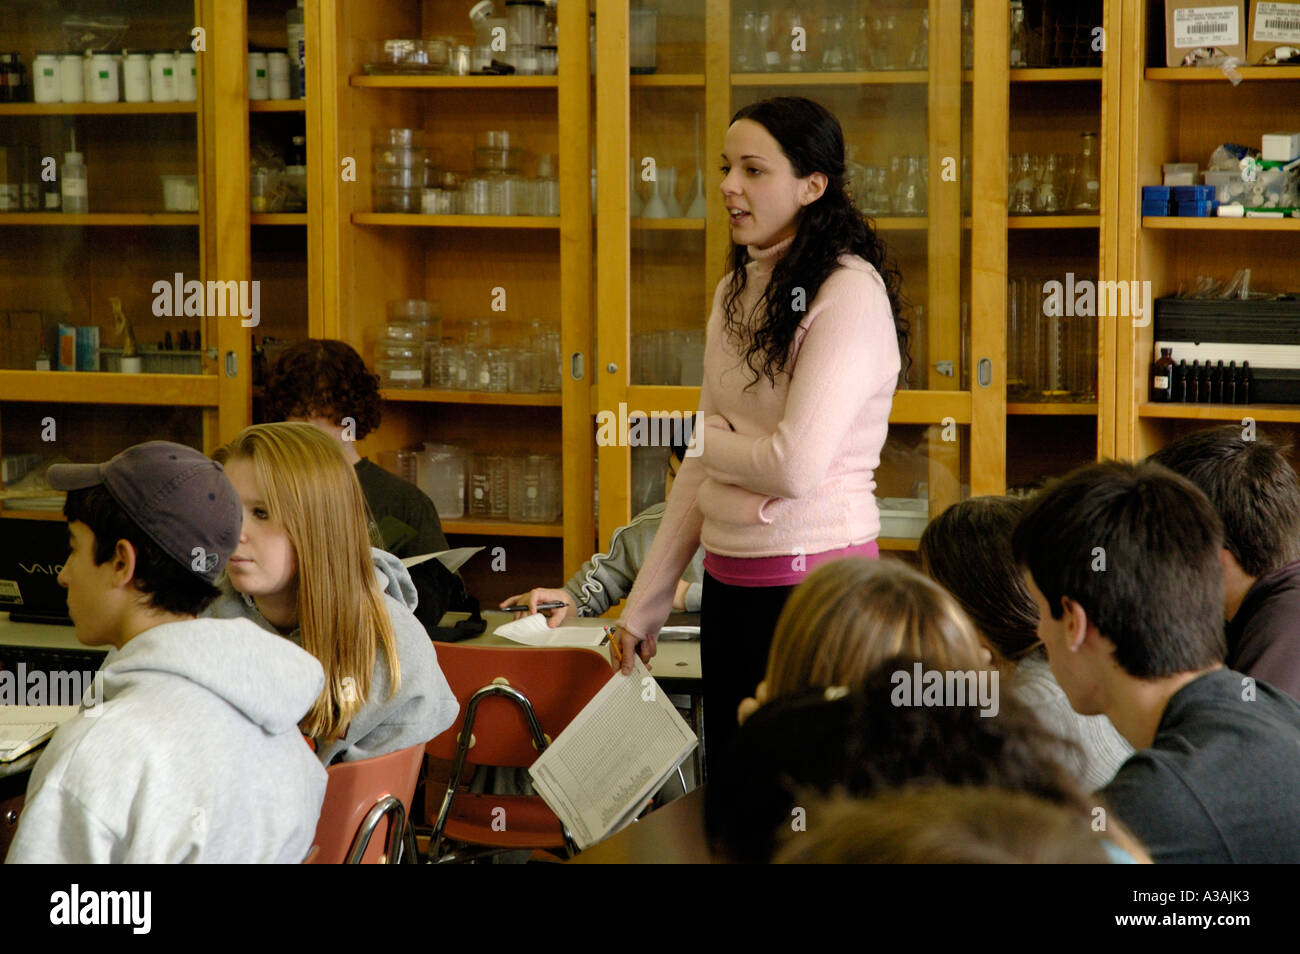 Young female teacher interacting with high school secondary students in classroom - Stock Image